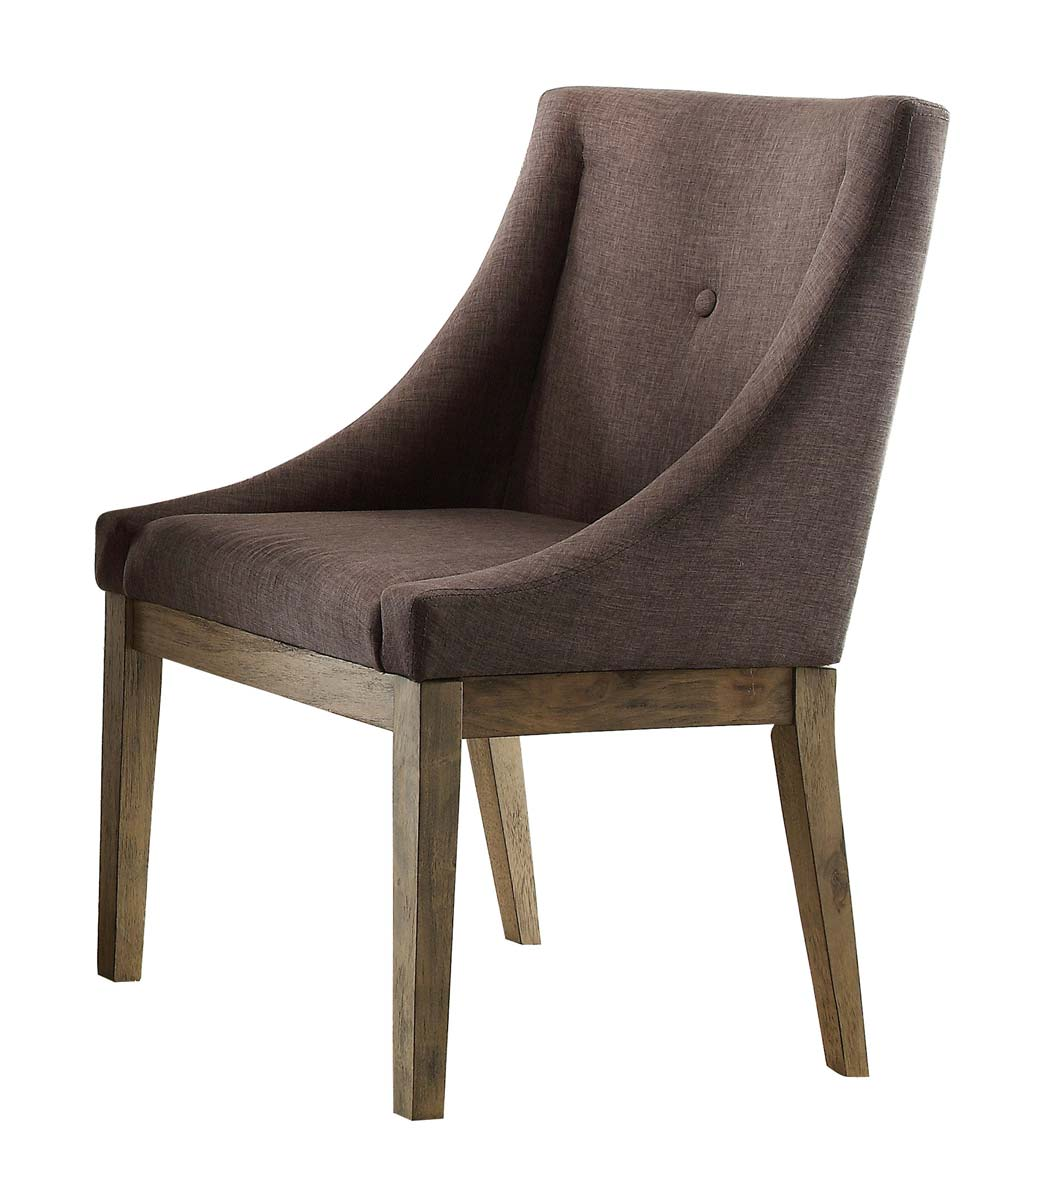 Homelegance Anna Claire Curved Arm Chair - Driftwood/Grey